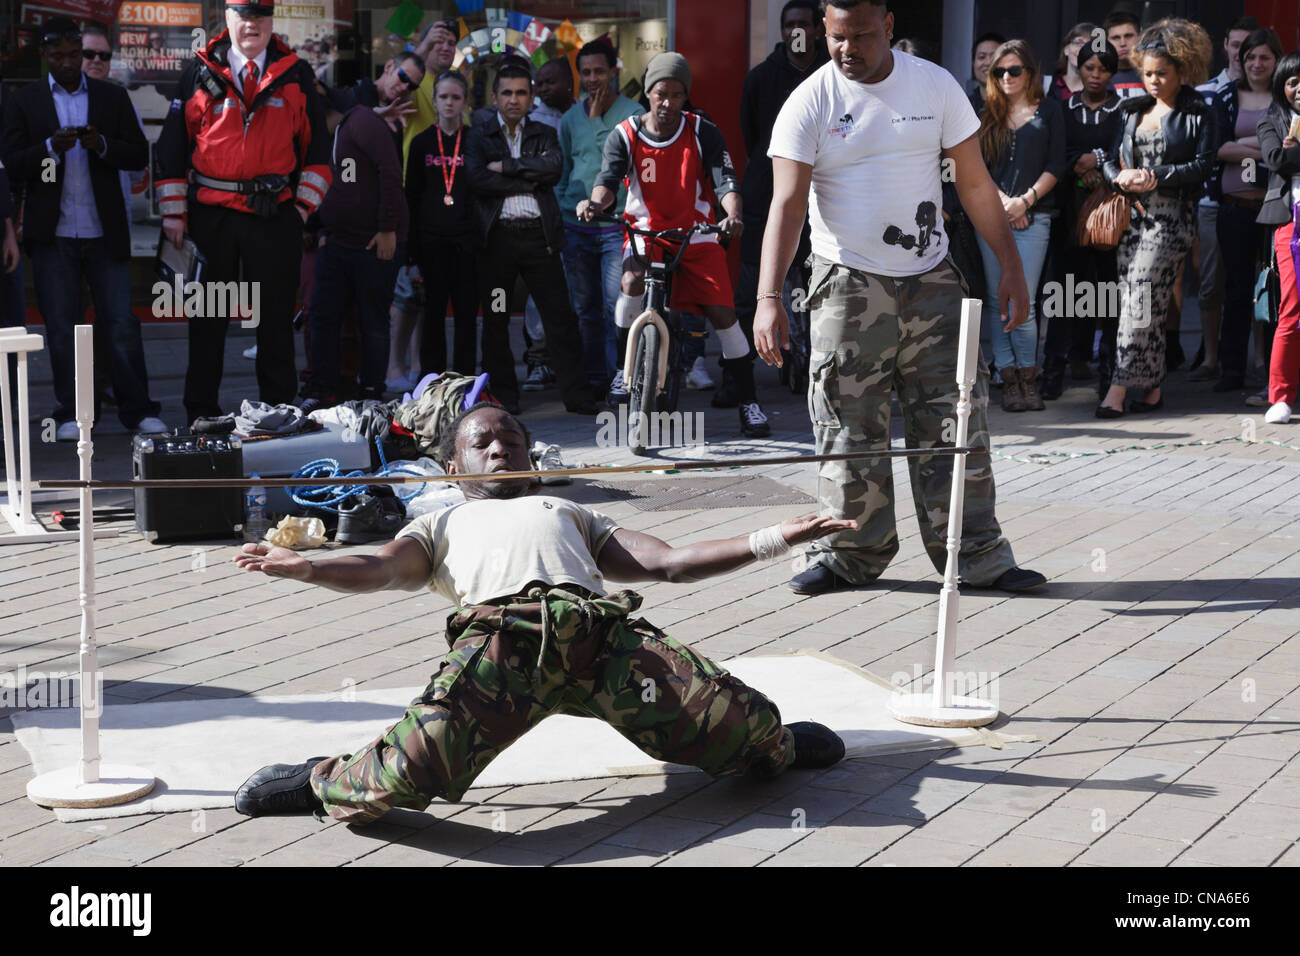 Street entertainers limbo dancing under a low pole with an audience of people watching in Leeds city centre Yorkshire - Stock Image